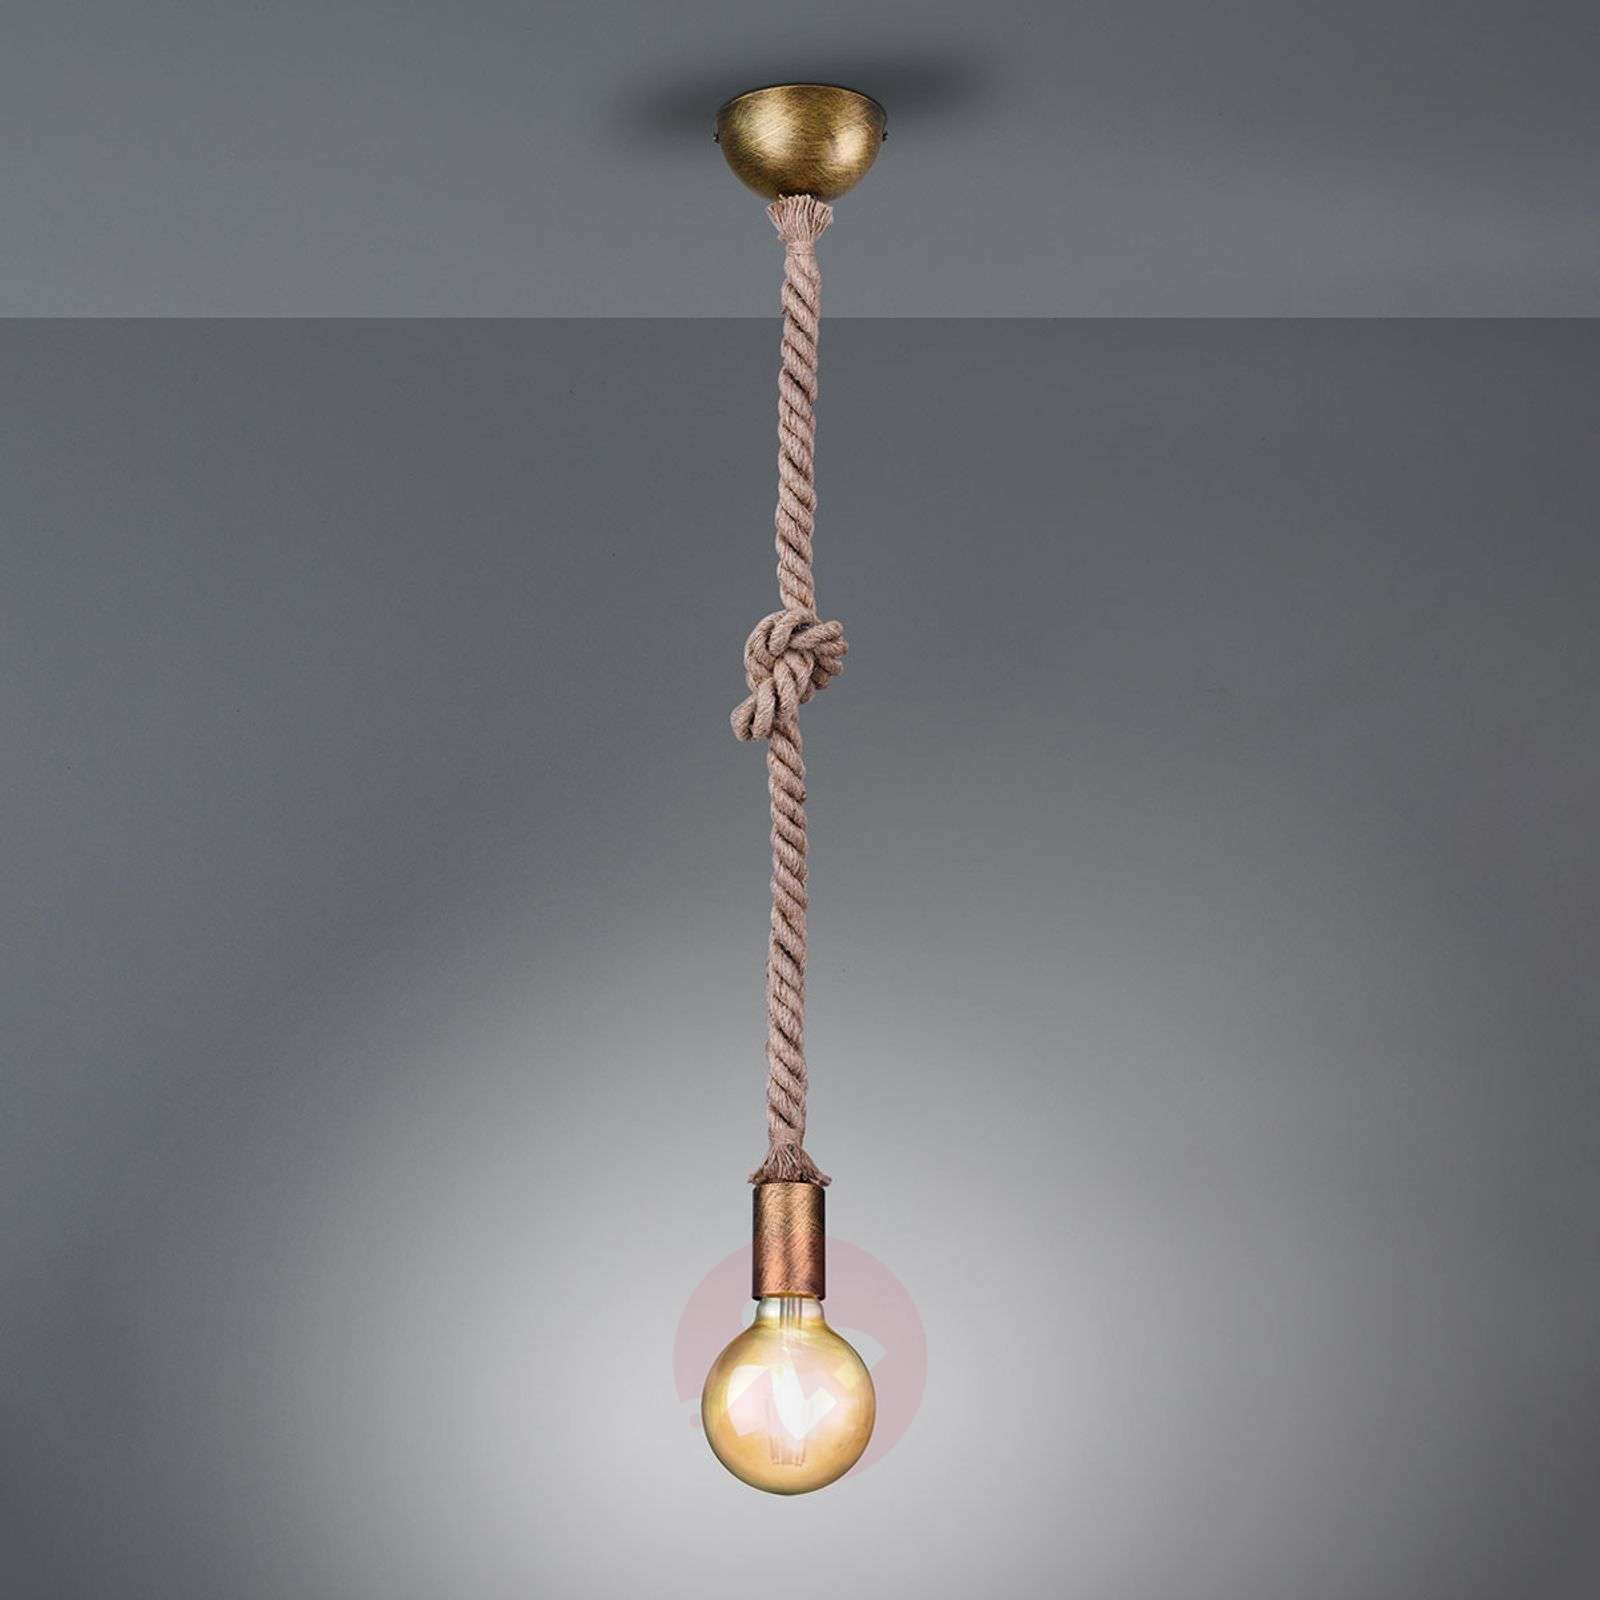 Rope pendant lamp with a decorative rope, 1-bulb